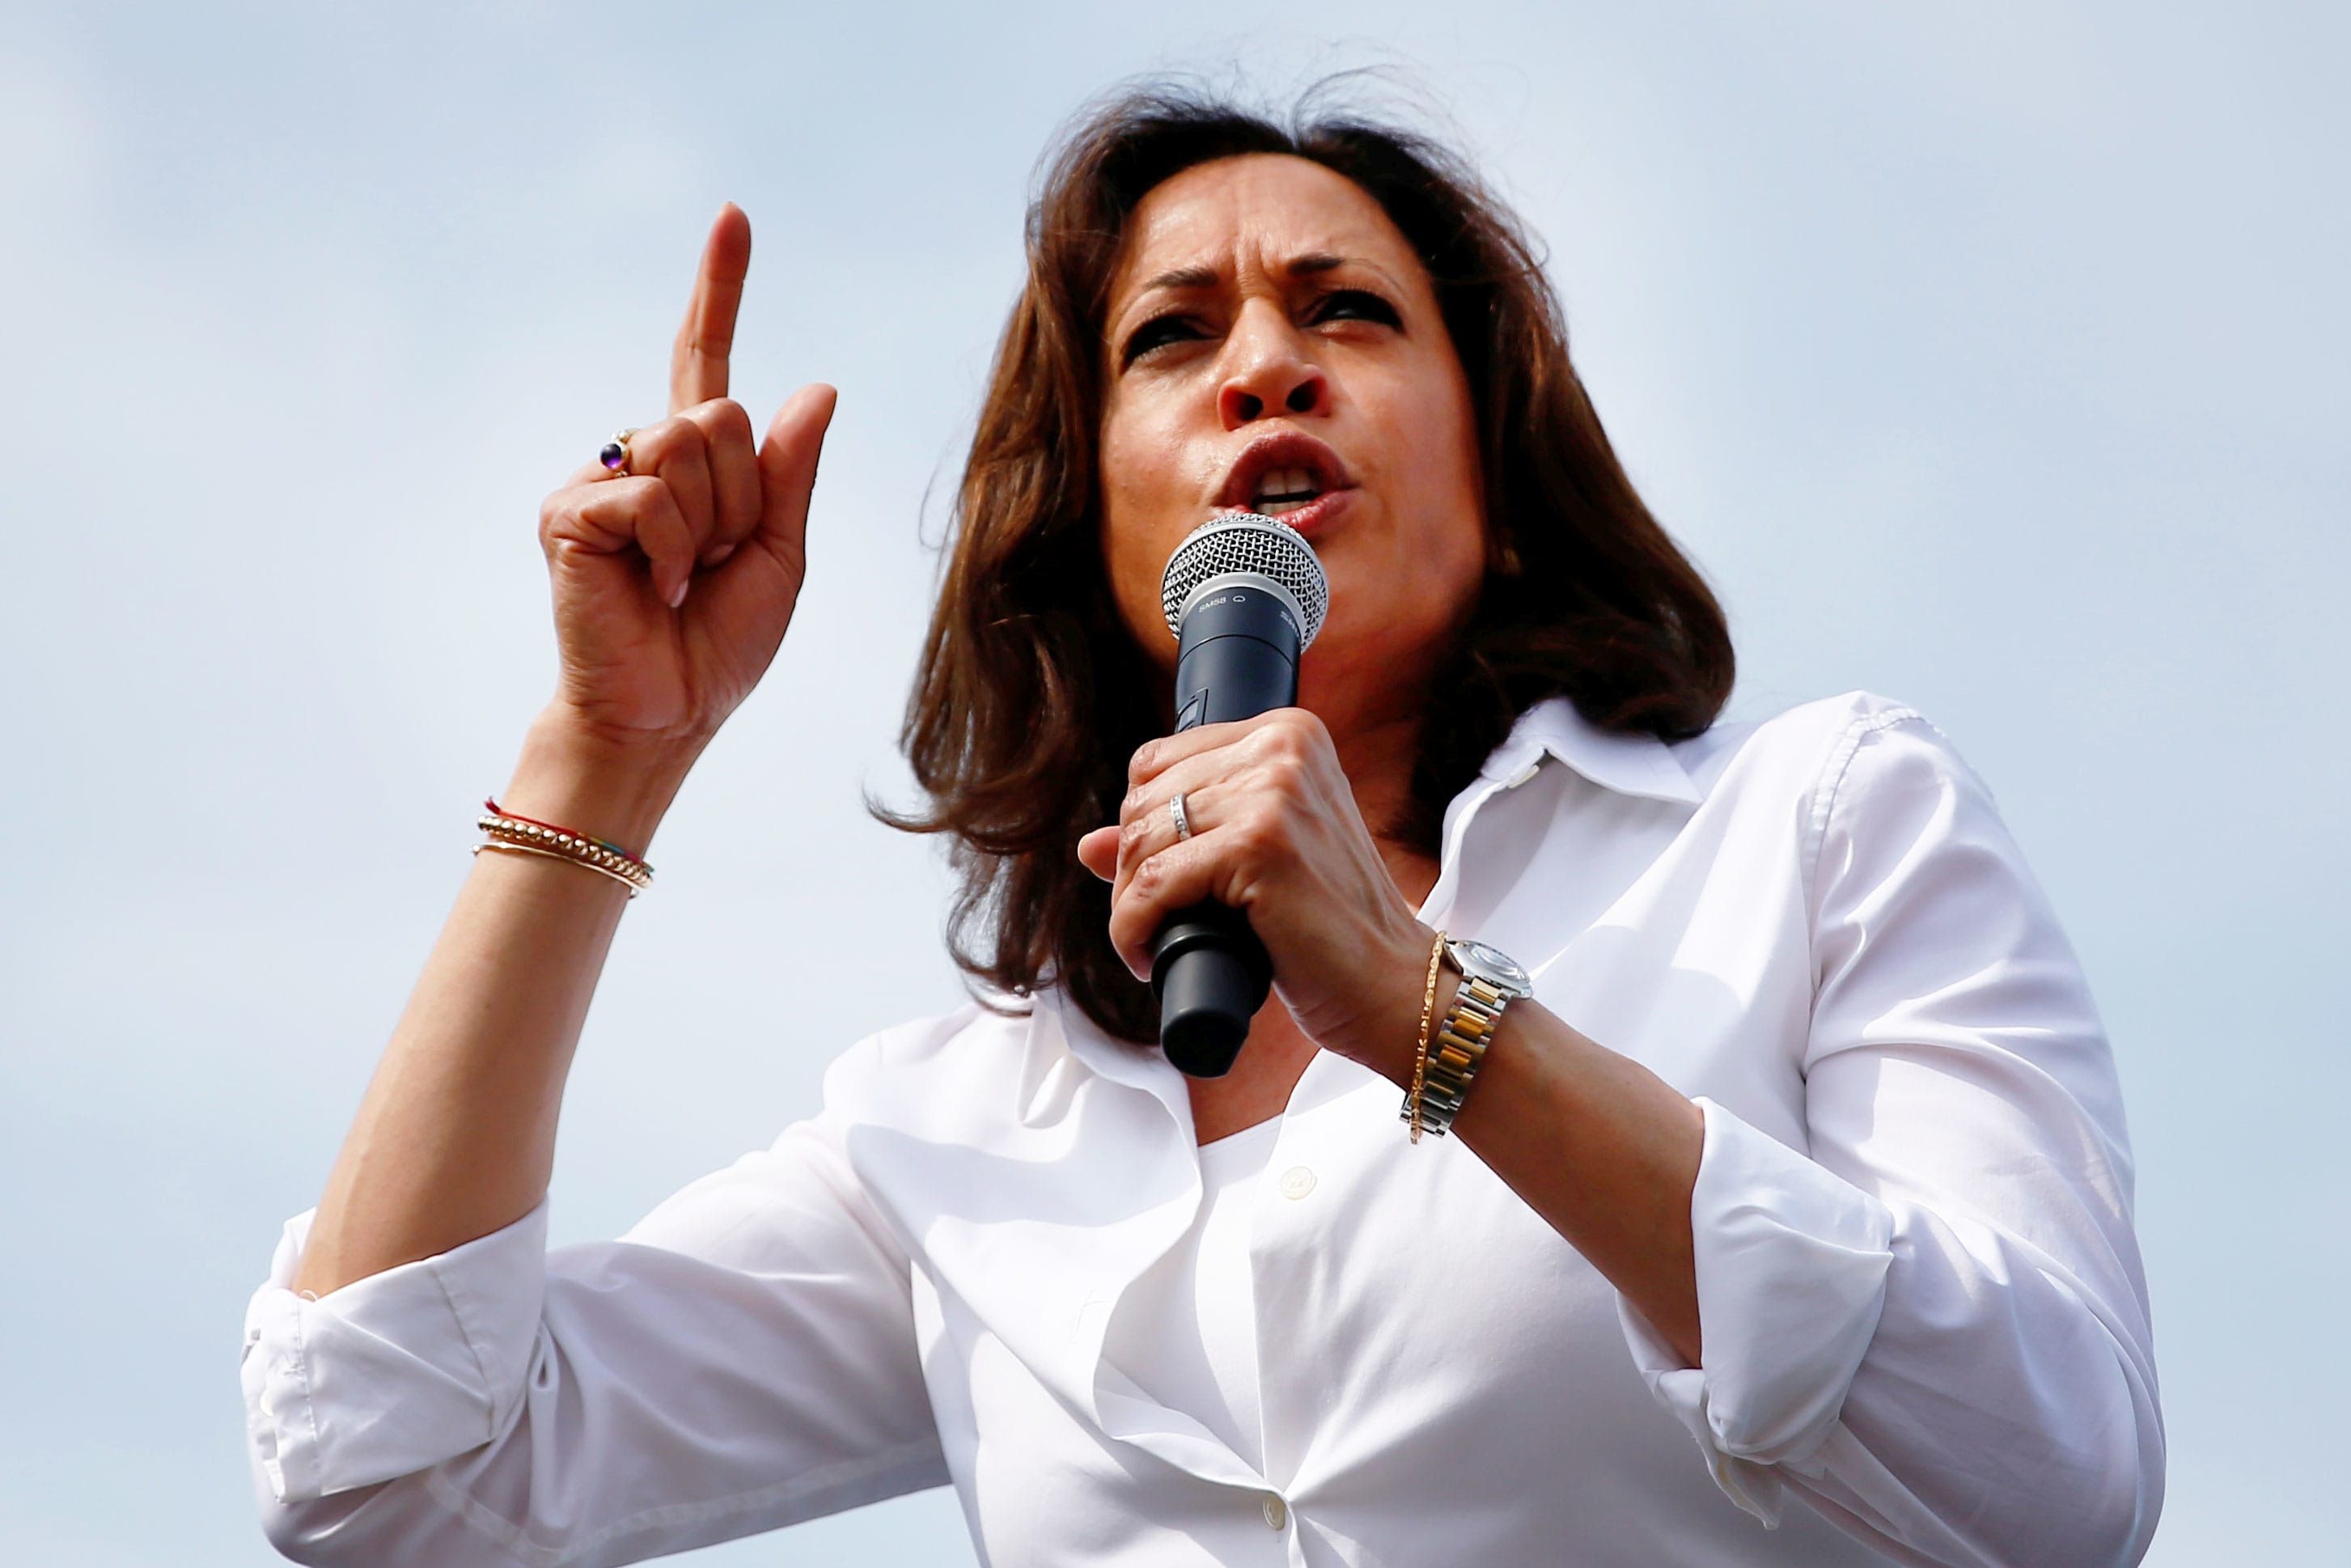 Kamala Harris asks Twitter CEO Jack Dorsey to consider suspending Trump's account